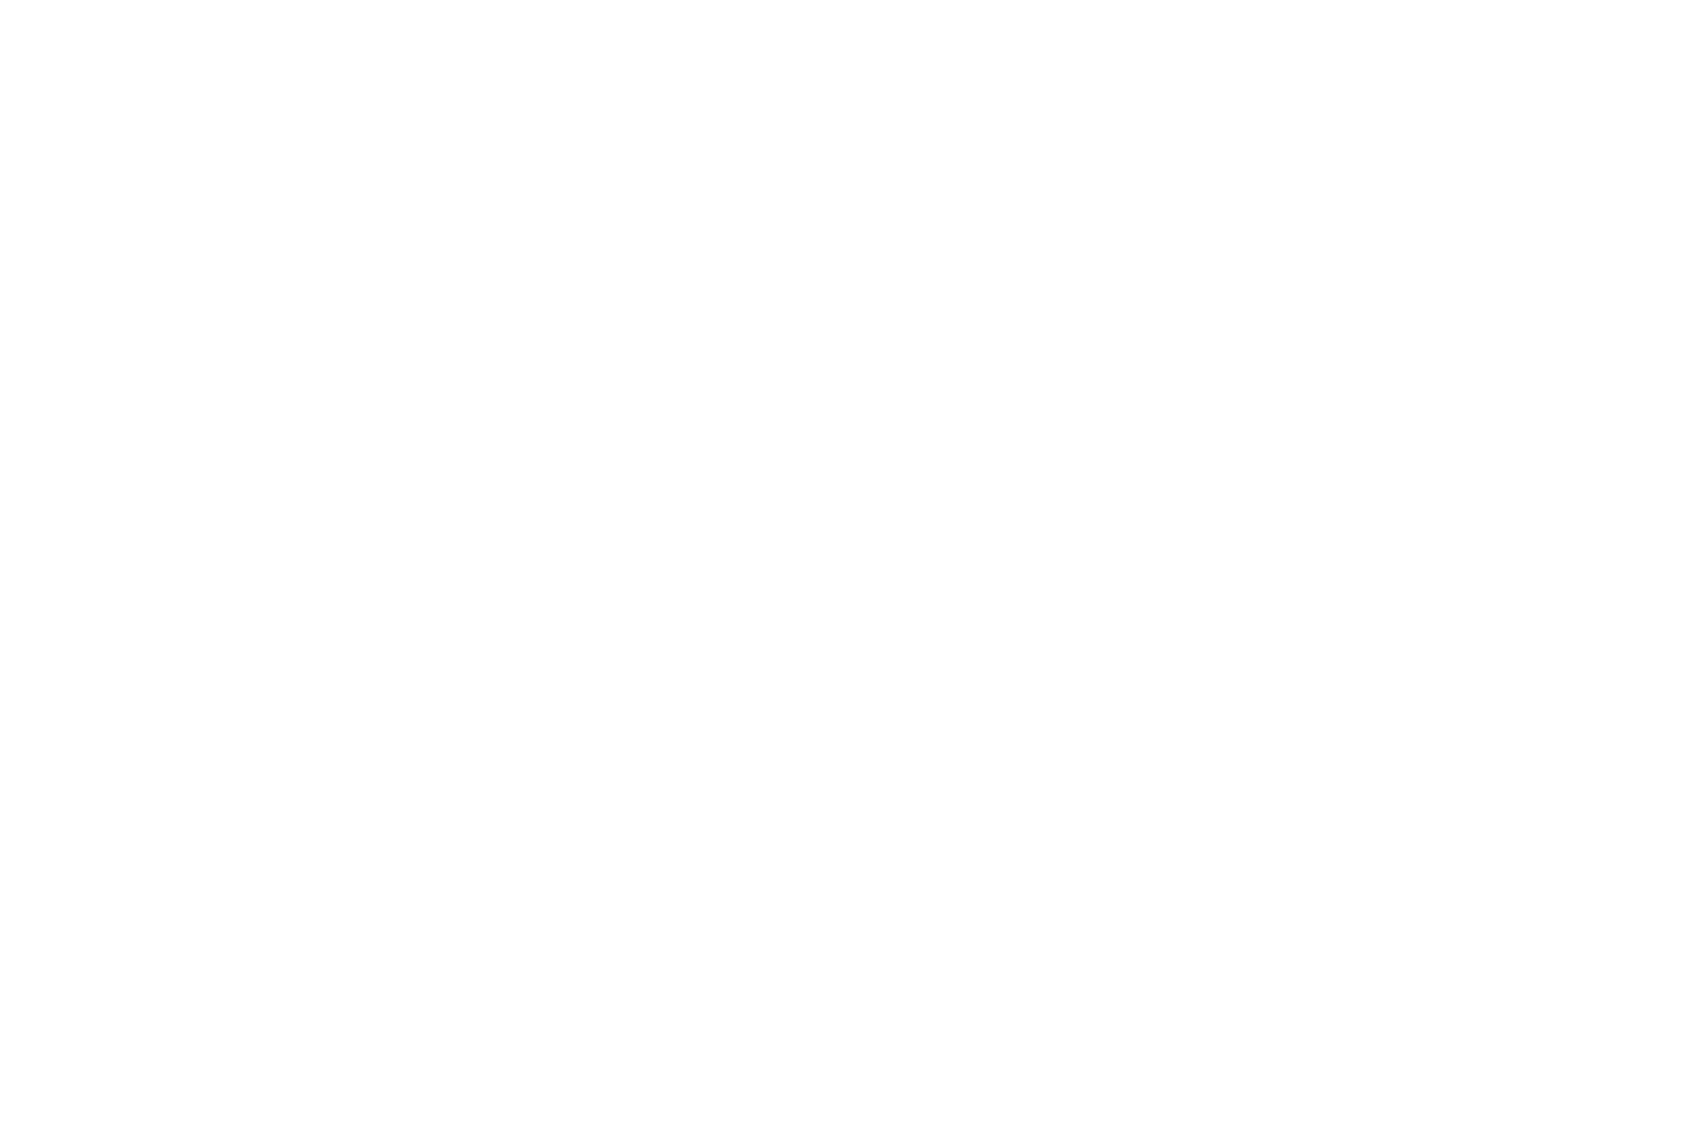 Meridian Bundle Packing